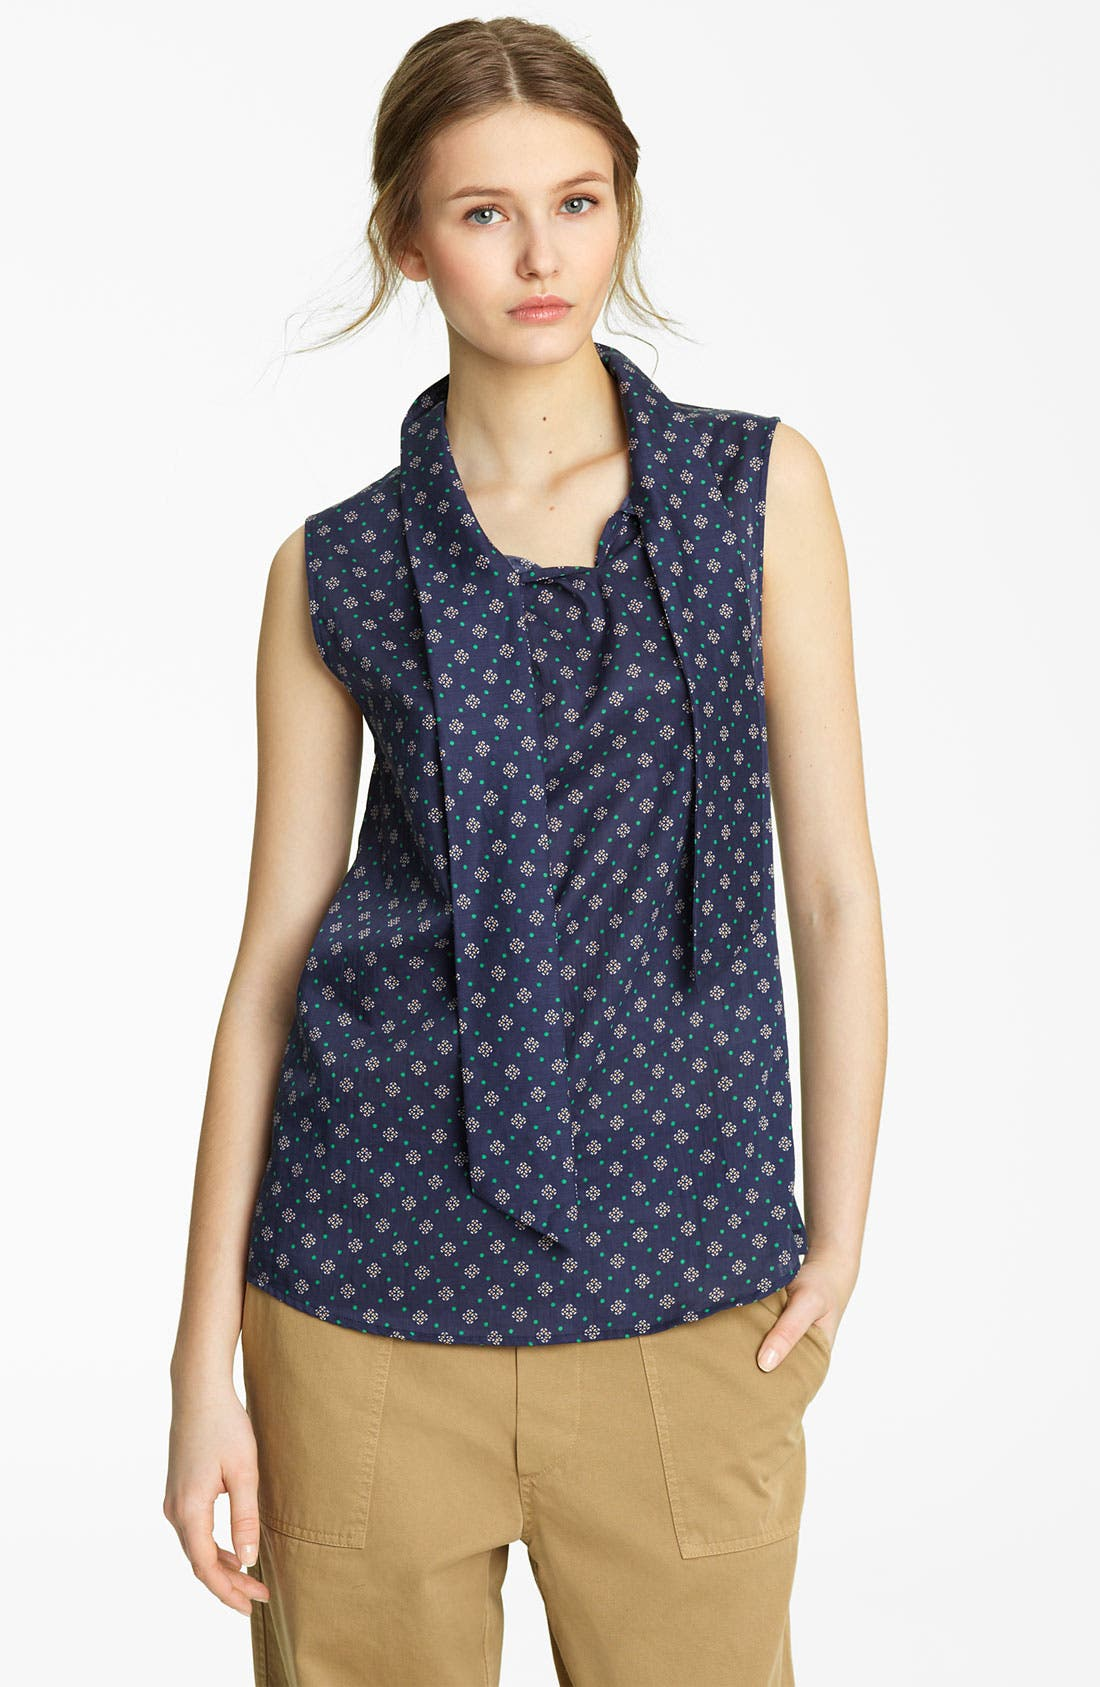 Alternate Image 1 Selected - Band of Outsiders Tie Neck Print Top